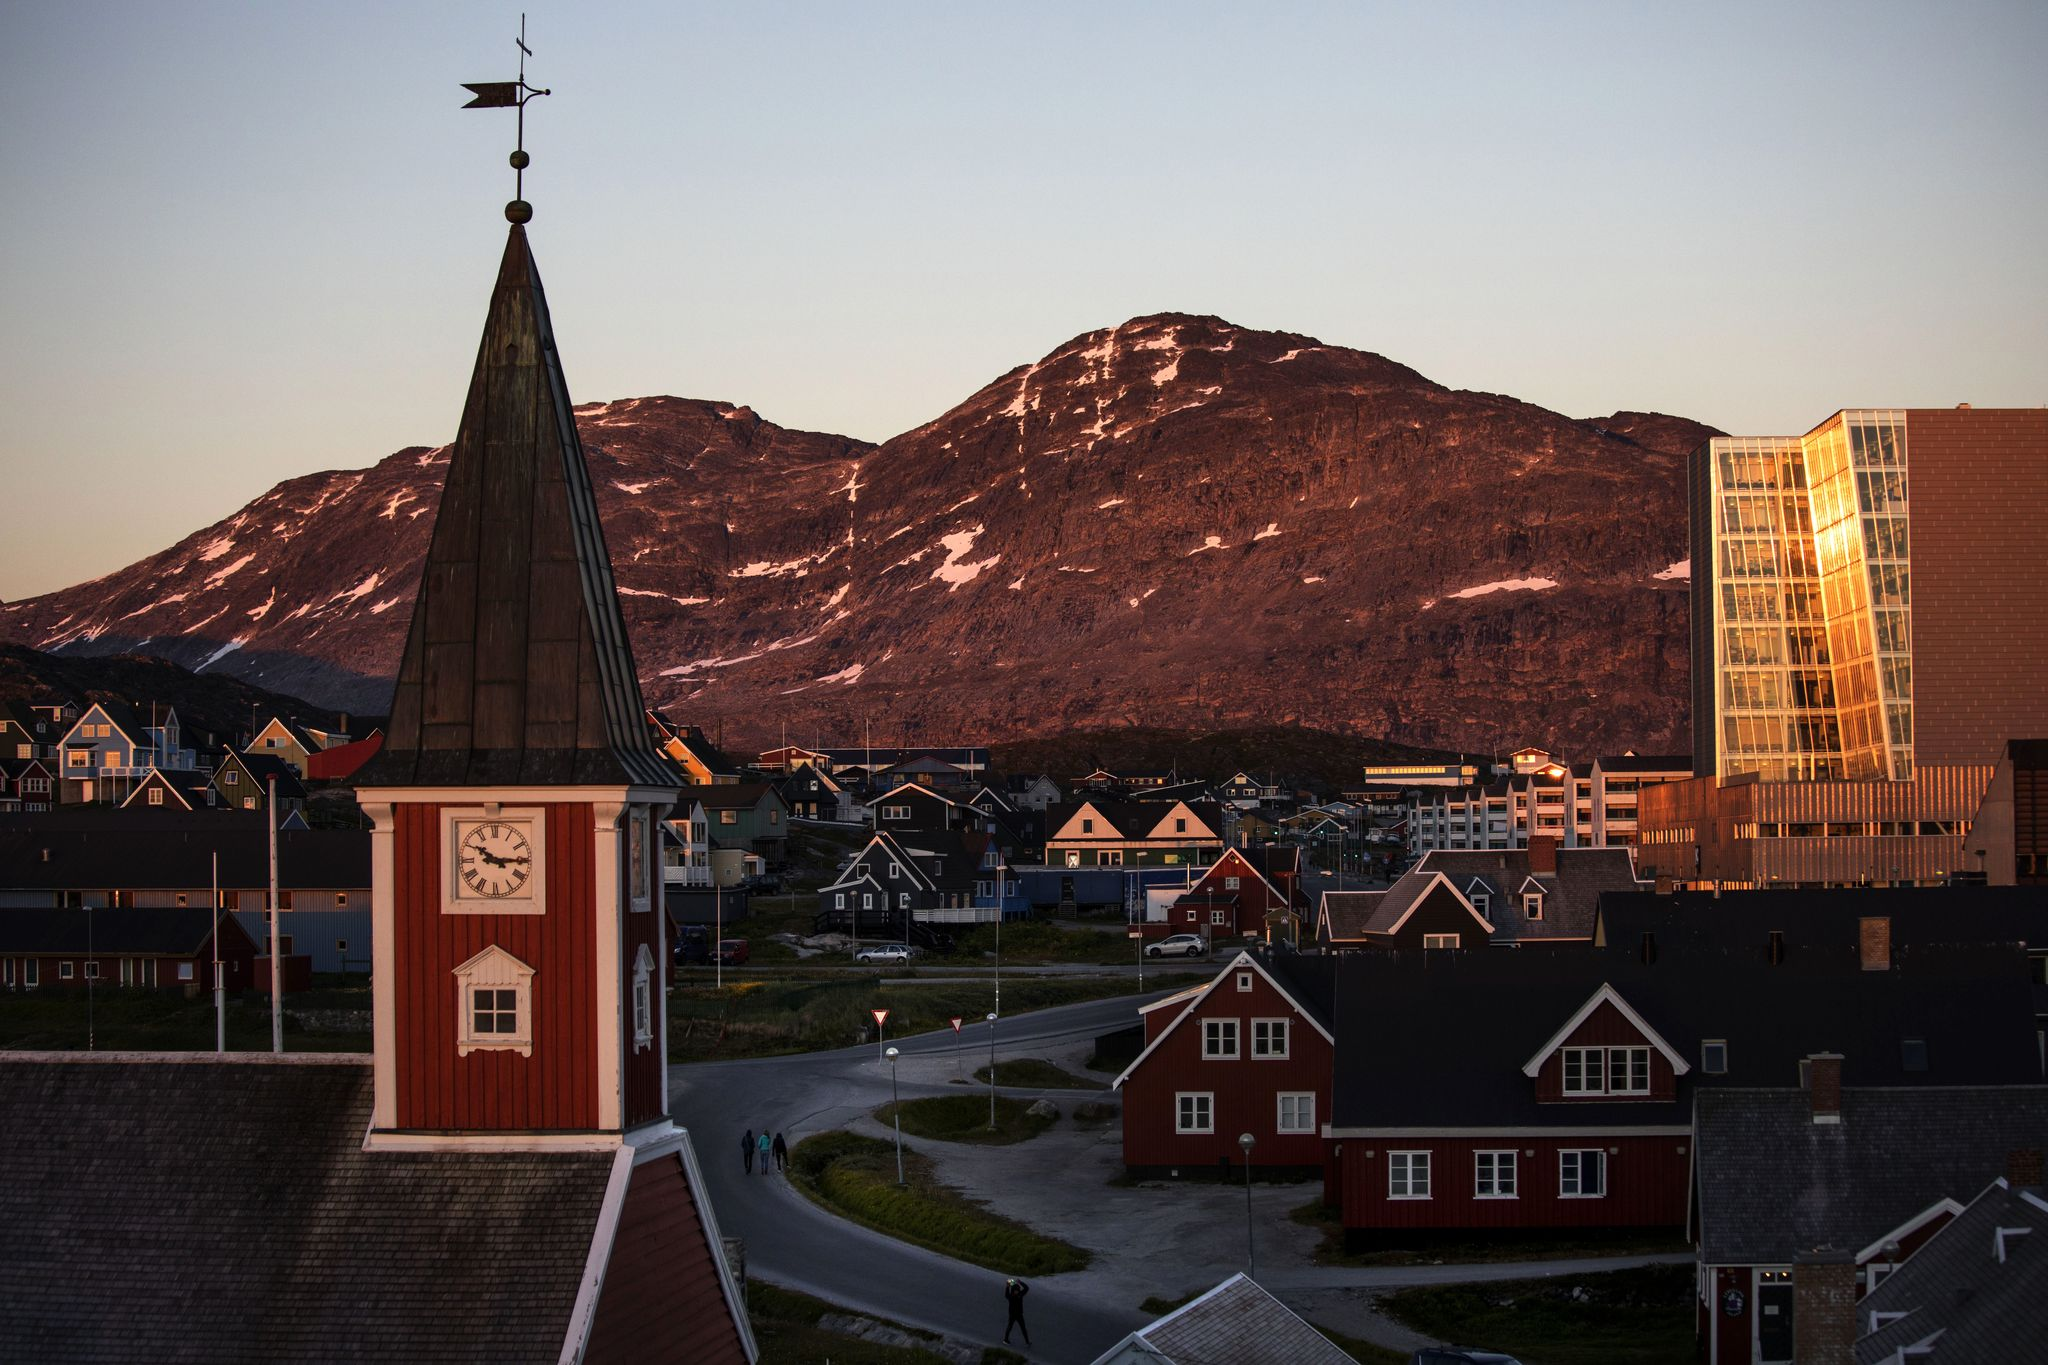 Buying Greenland: Trump haters mock the idea, but China is paying atte